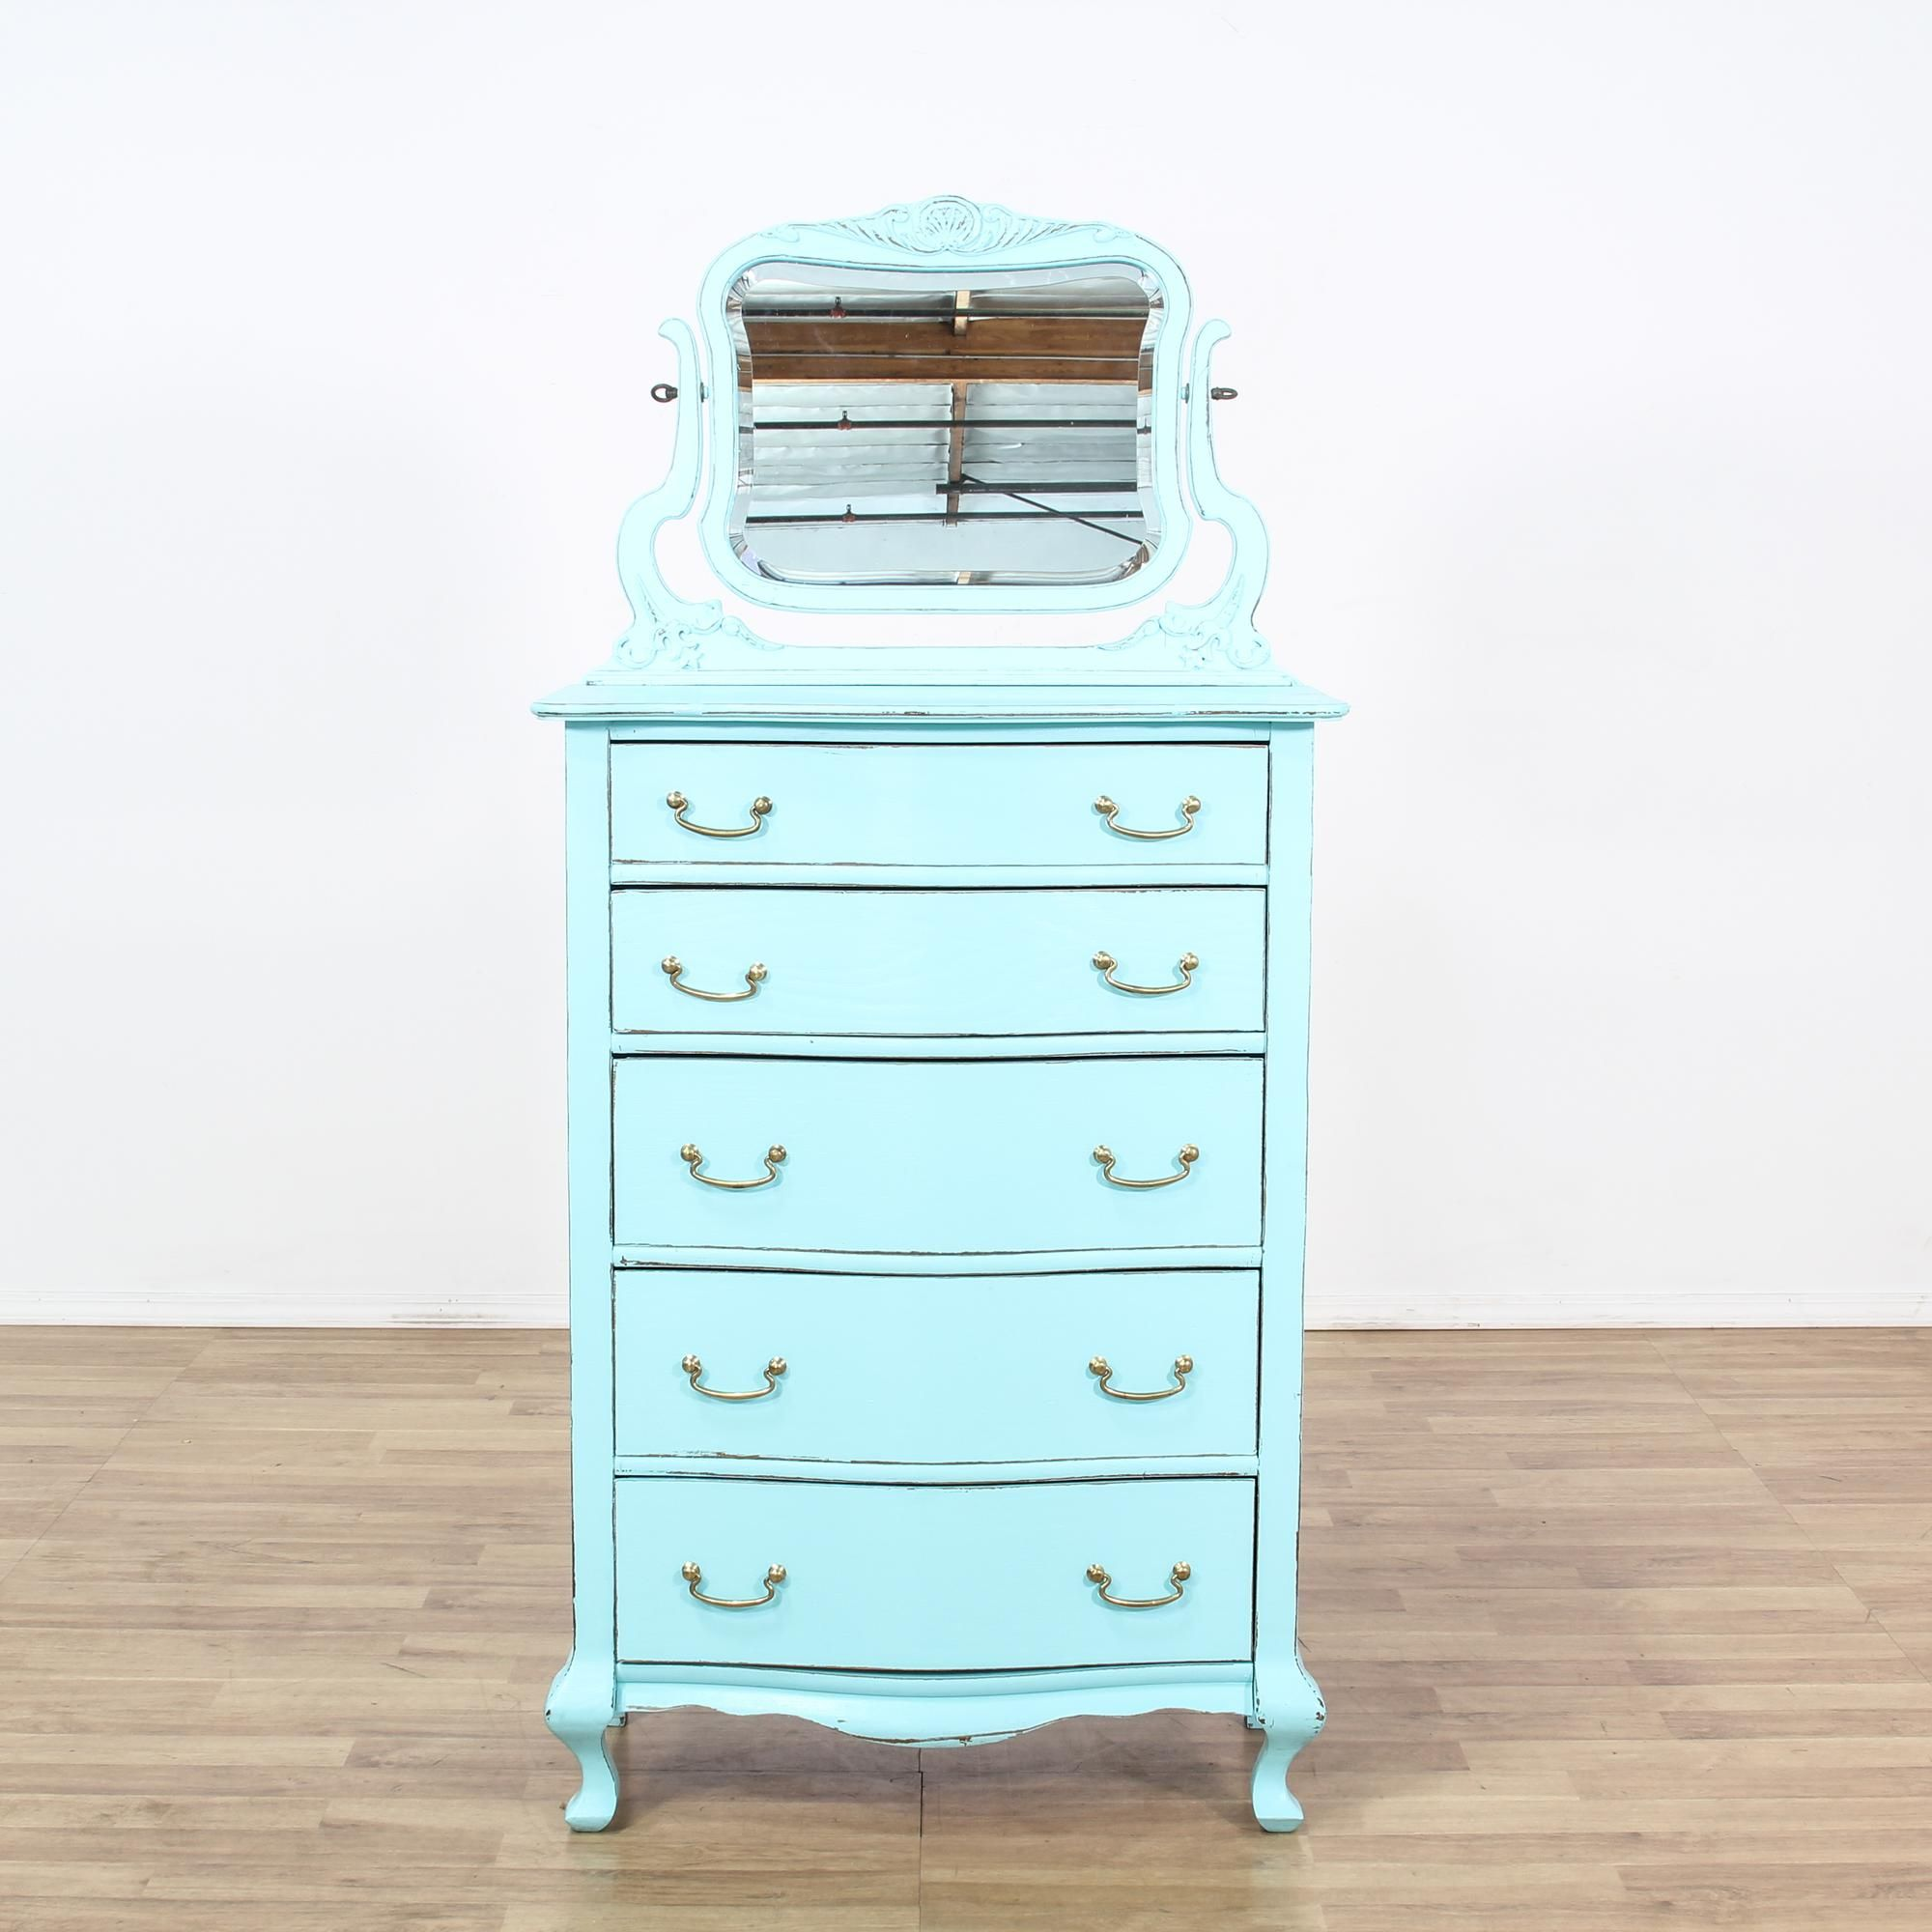 This Pacific Tall Dresser Is Featured In A Solid Wood With An Aqua Paint Finish This Shabby Chic Style Ch Shabby Chic Dresser Shabby Chic Style Tall Dresser